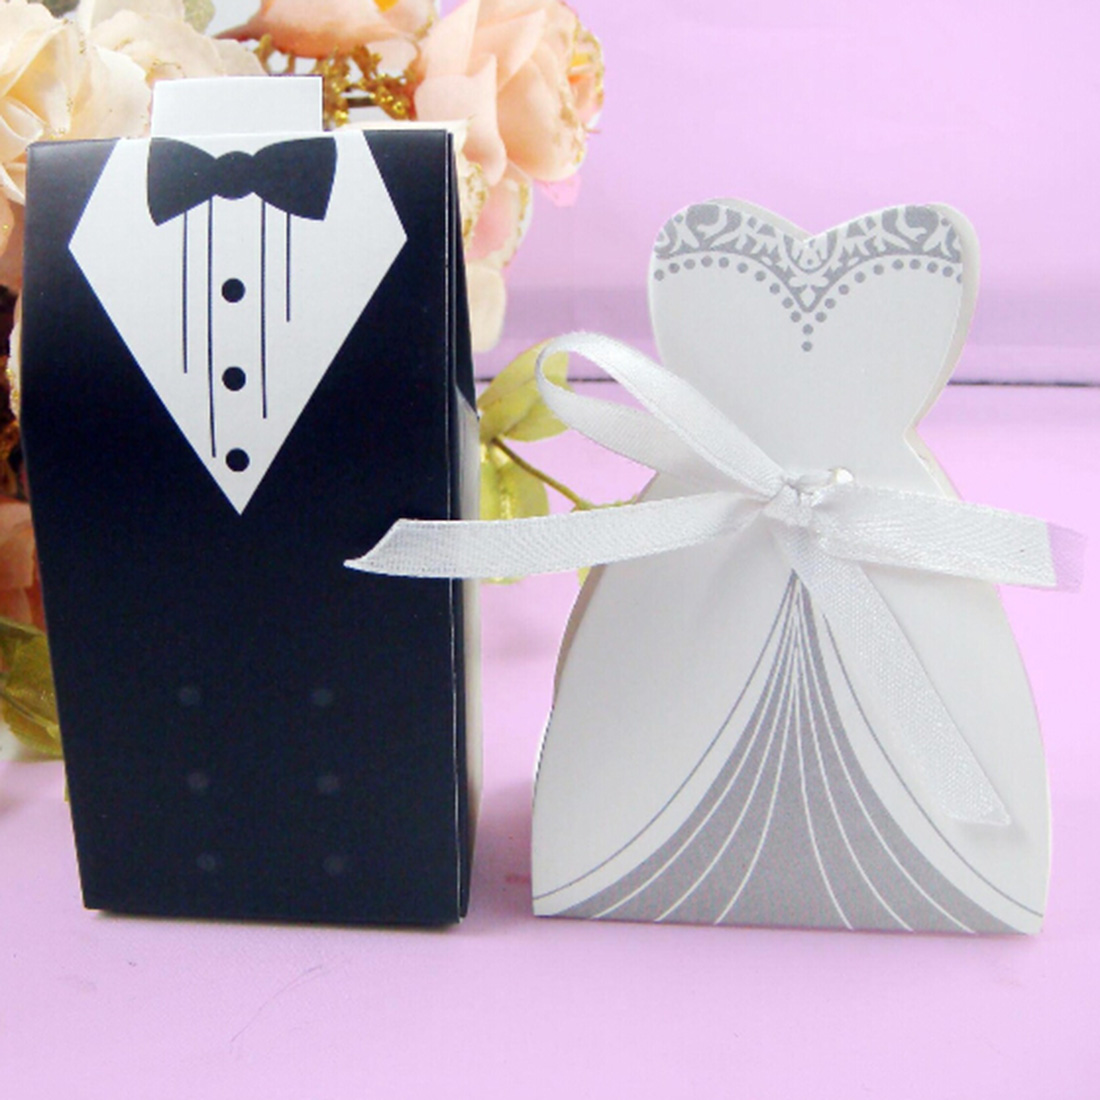 Aliexpress Decoration Mariage Hot Sale 10pcs Candy Box Bridal Gift Cases Groom Tuxedo